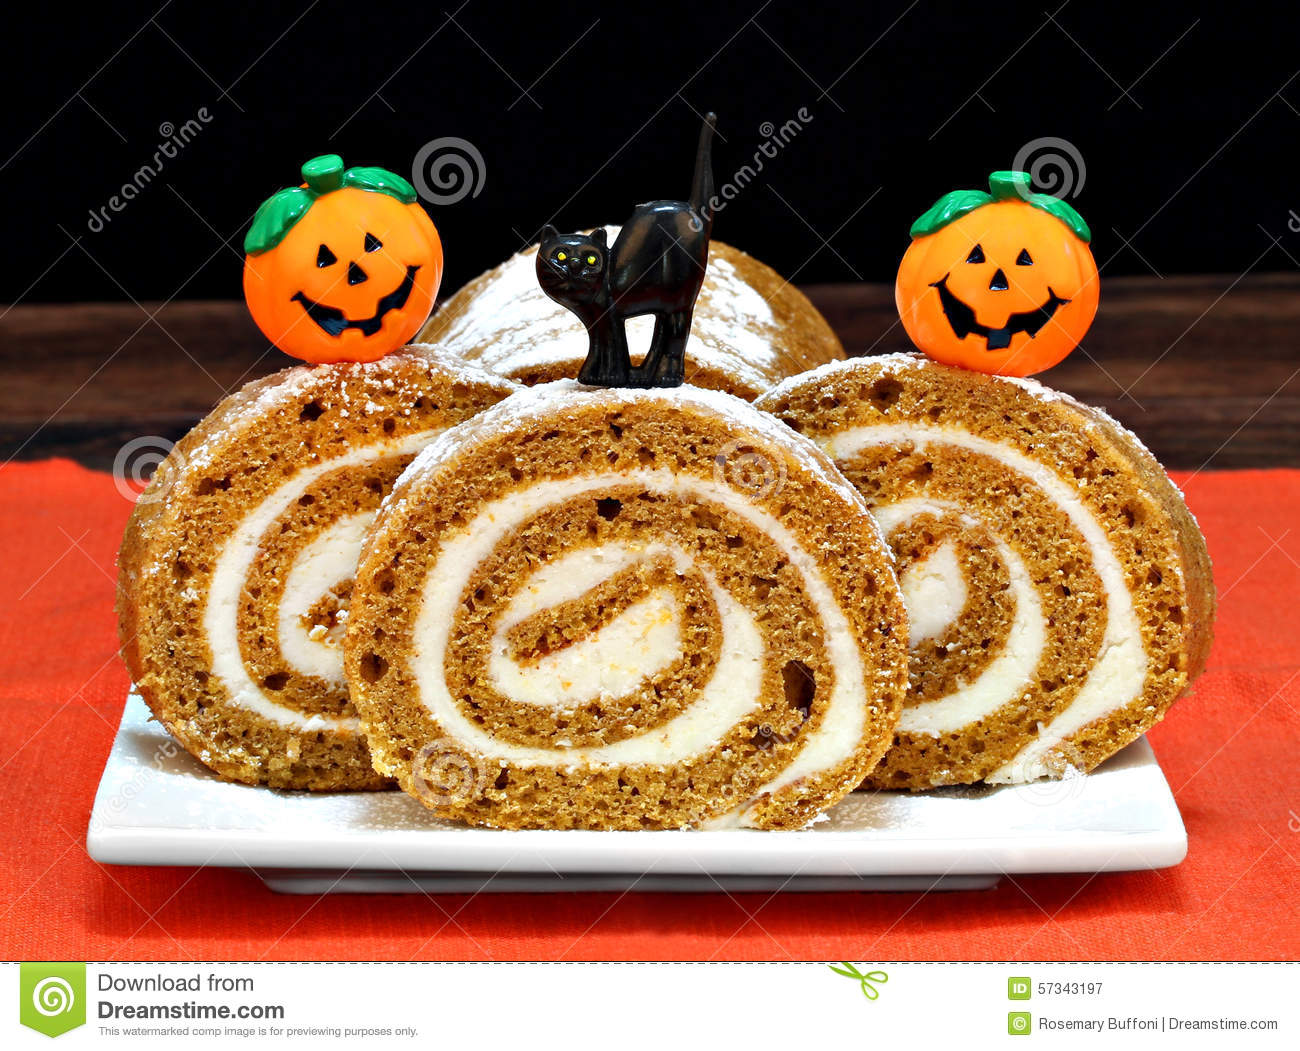 Halloween Decorated Cake Roll : Pumpkin Roll Cake Decorated For Halloween Stock Image ...